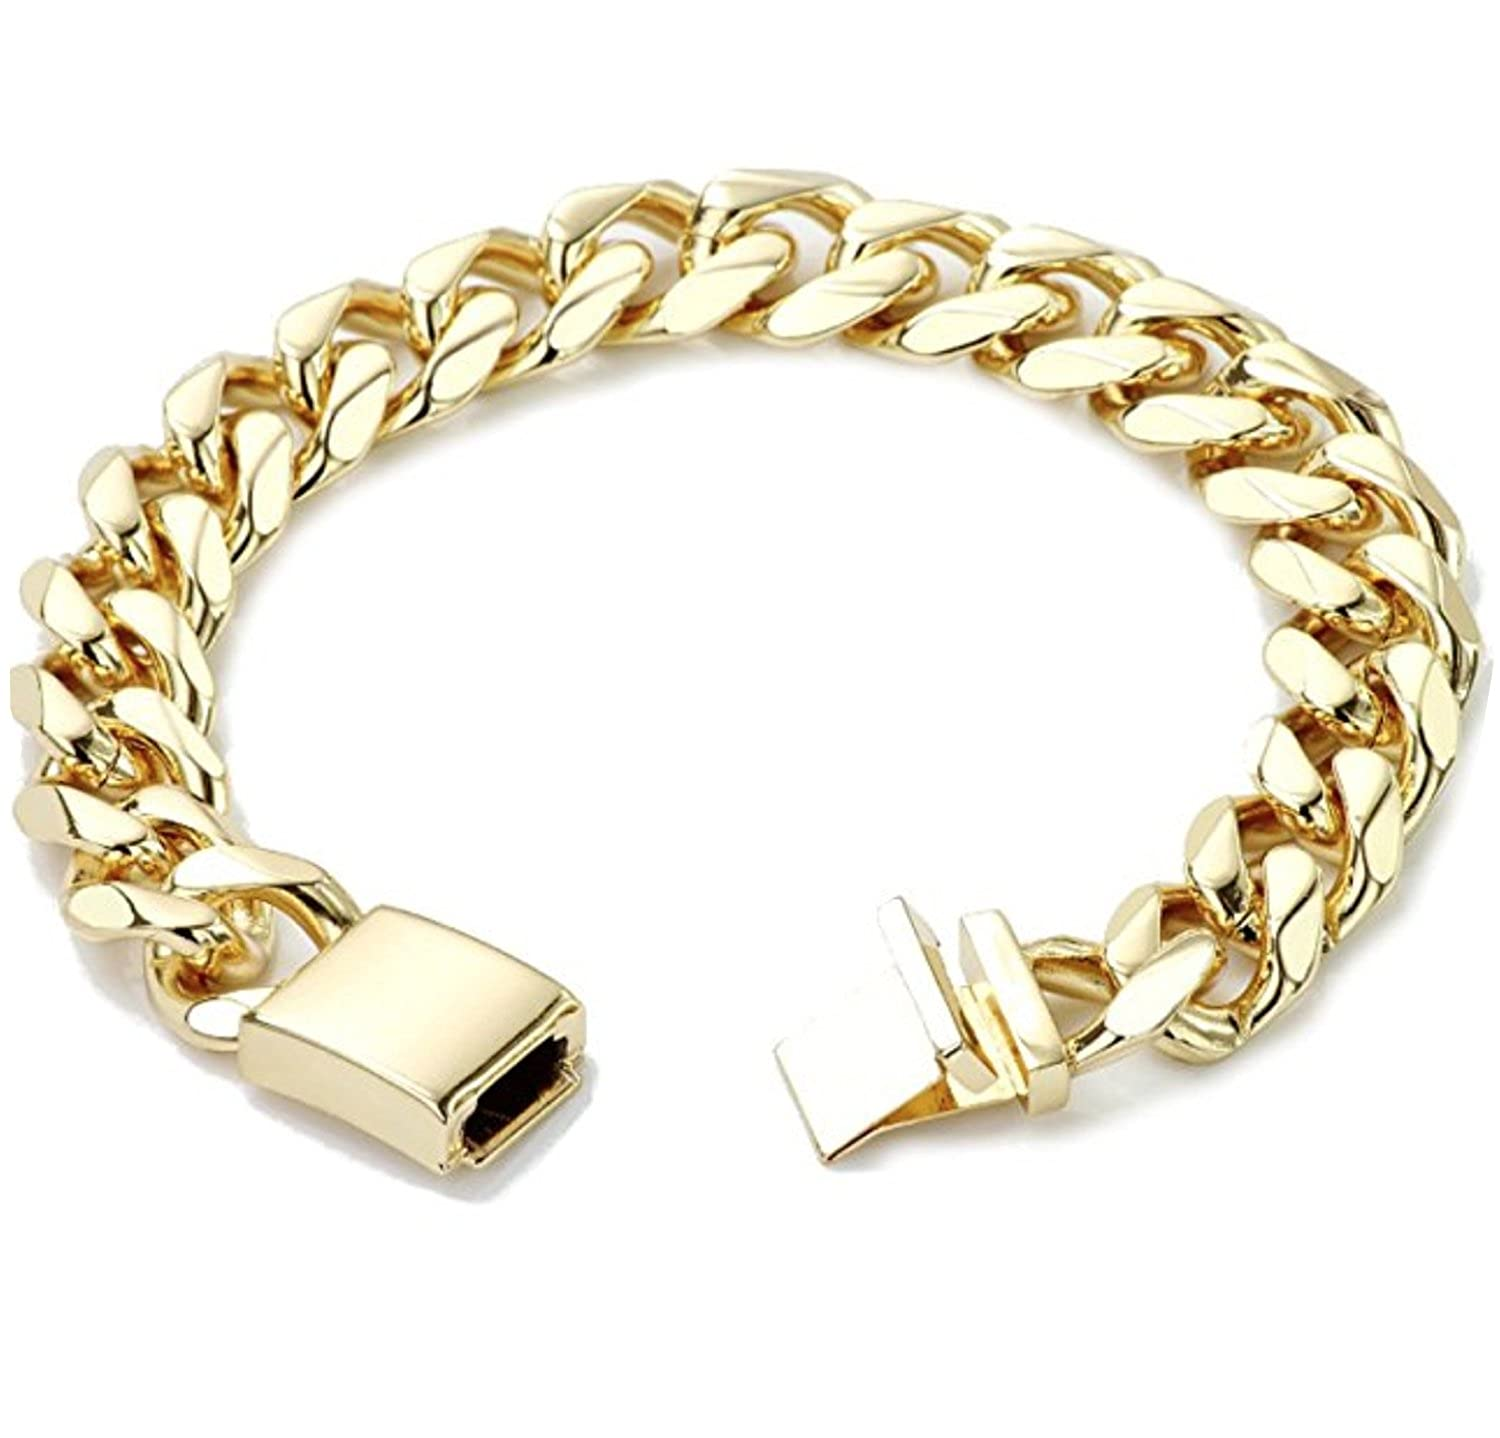 4ece7d474d014 18K Gold Cuban Link Bracelet 9MM Round Solid Fashion Jewelry 24K Gold  Filled Miami Cuban Link Diamond Cut